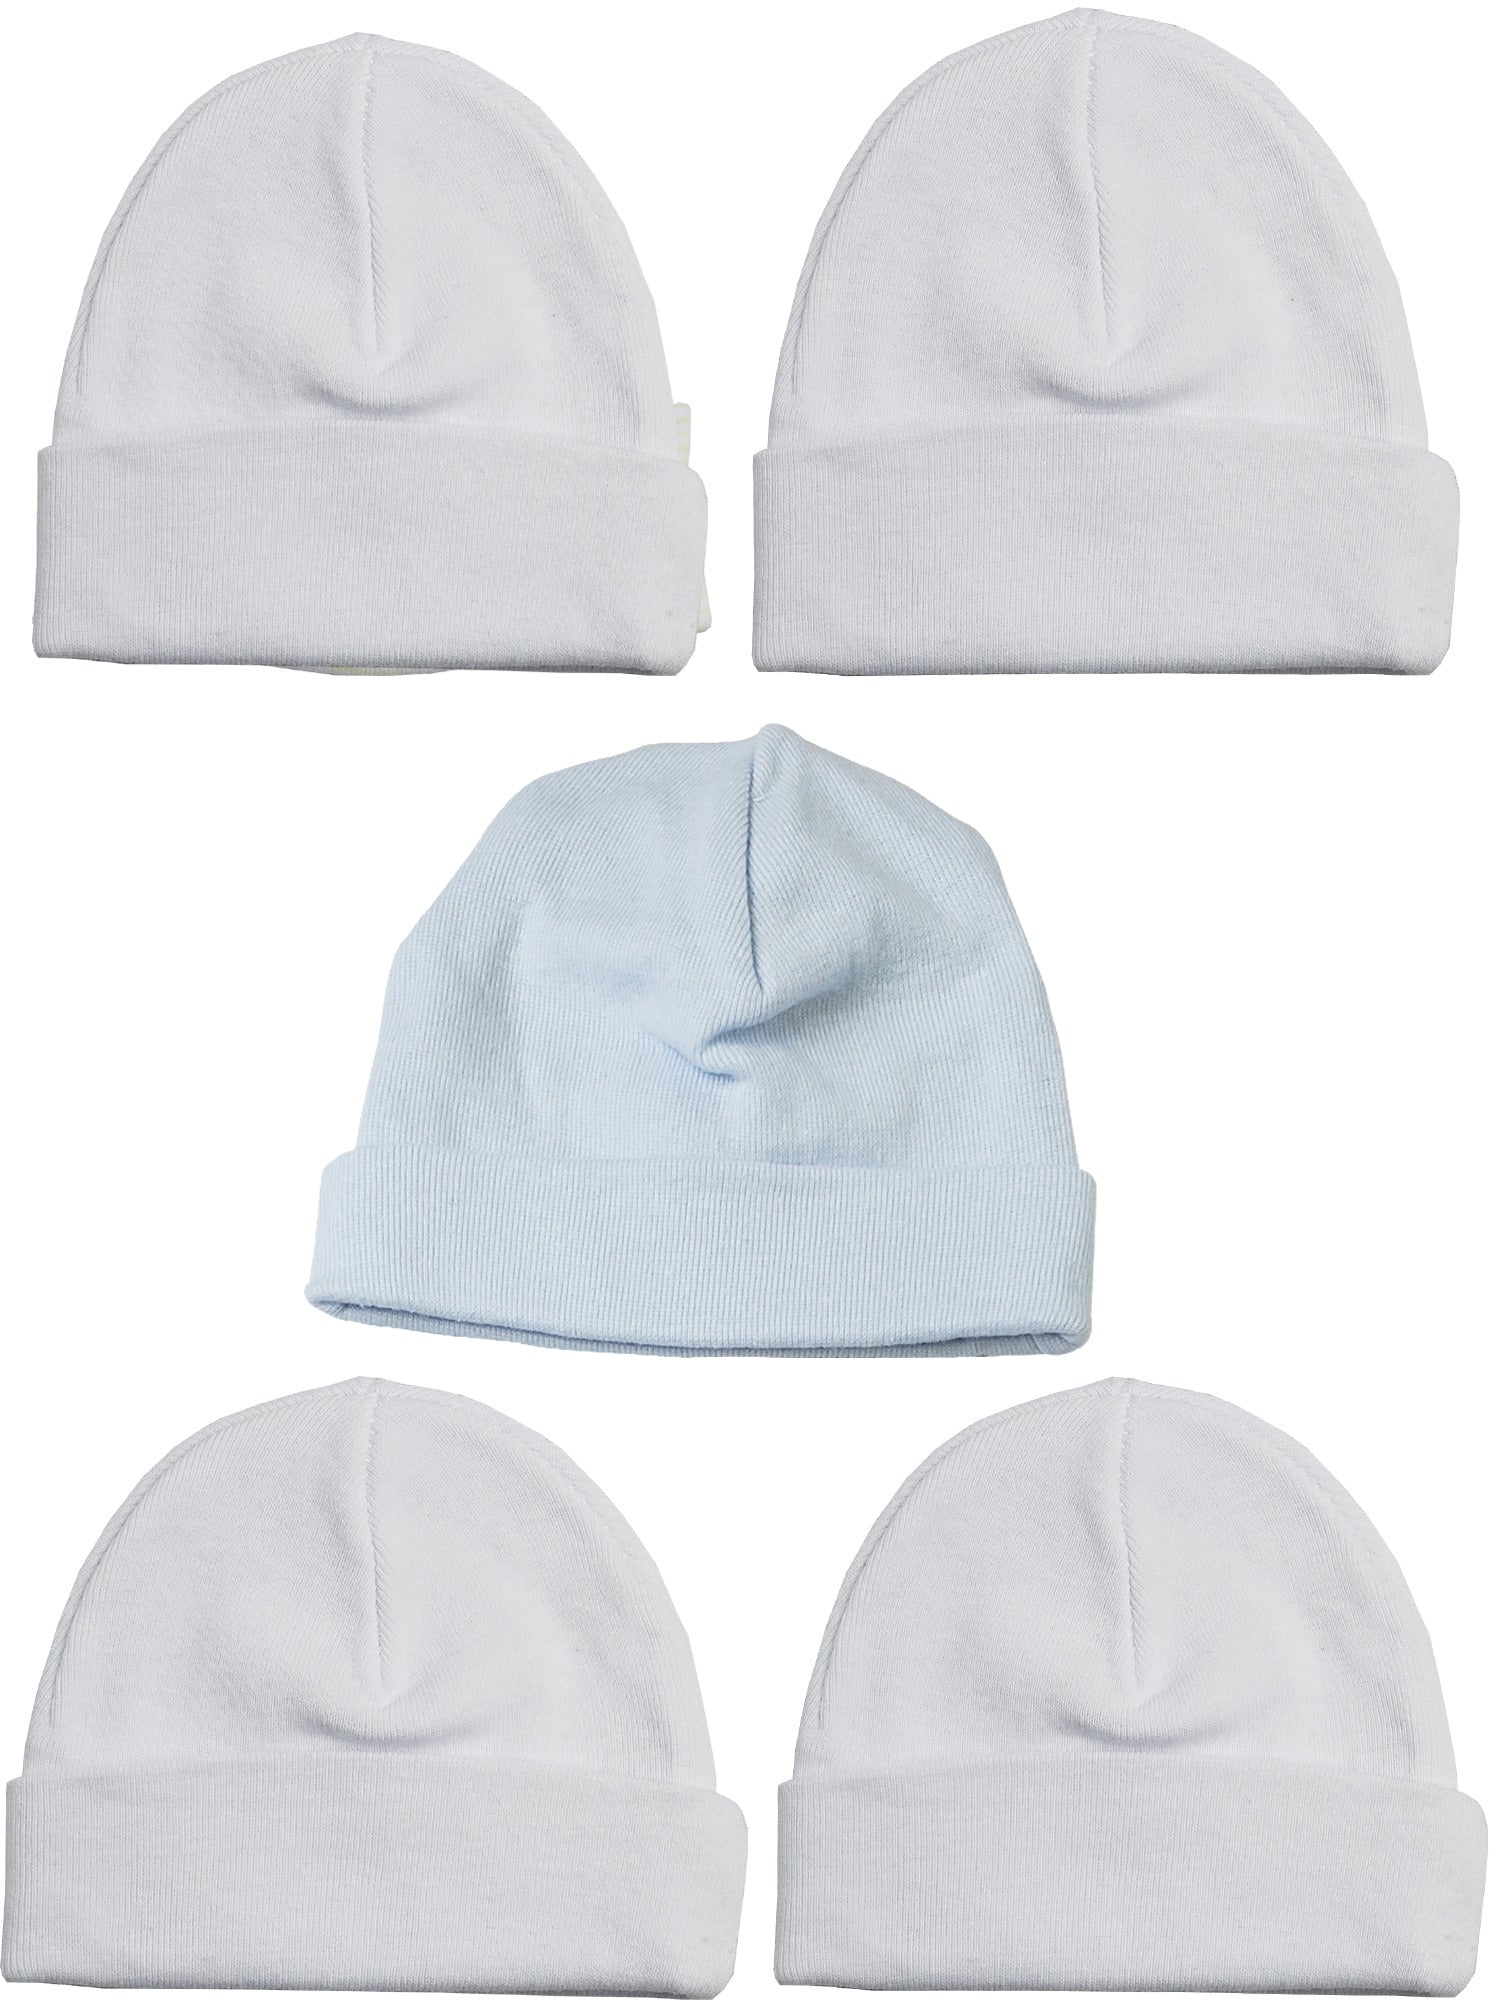 Bambini Boys Baby Caps (Pack of 5)